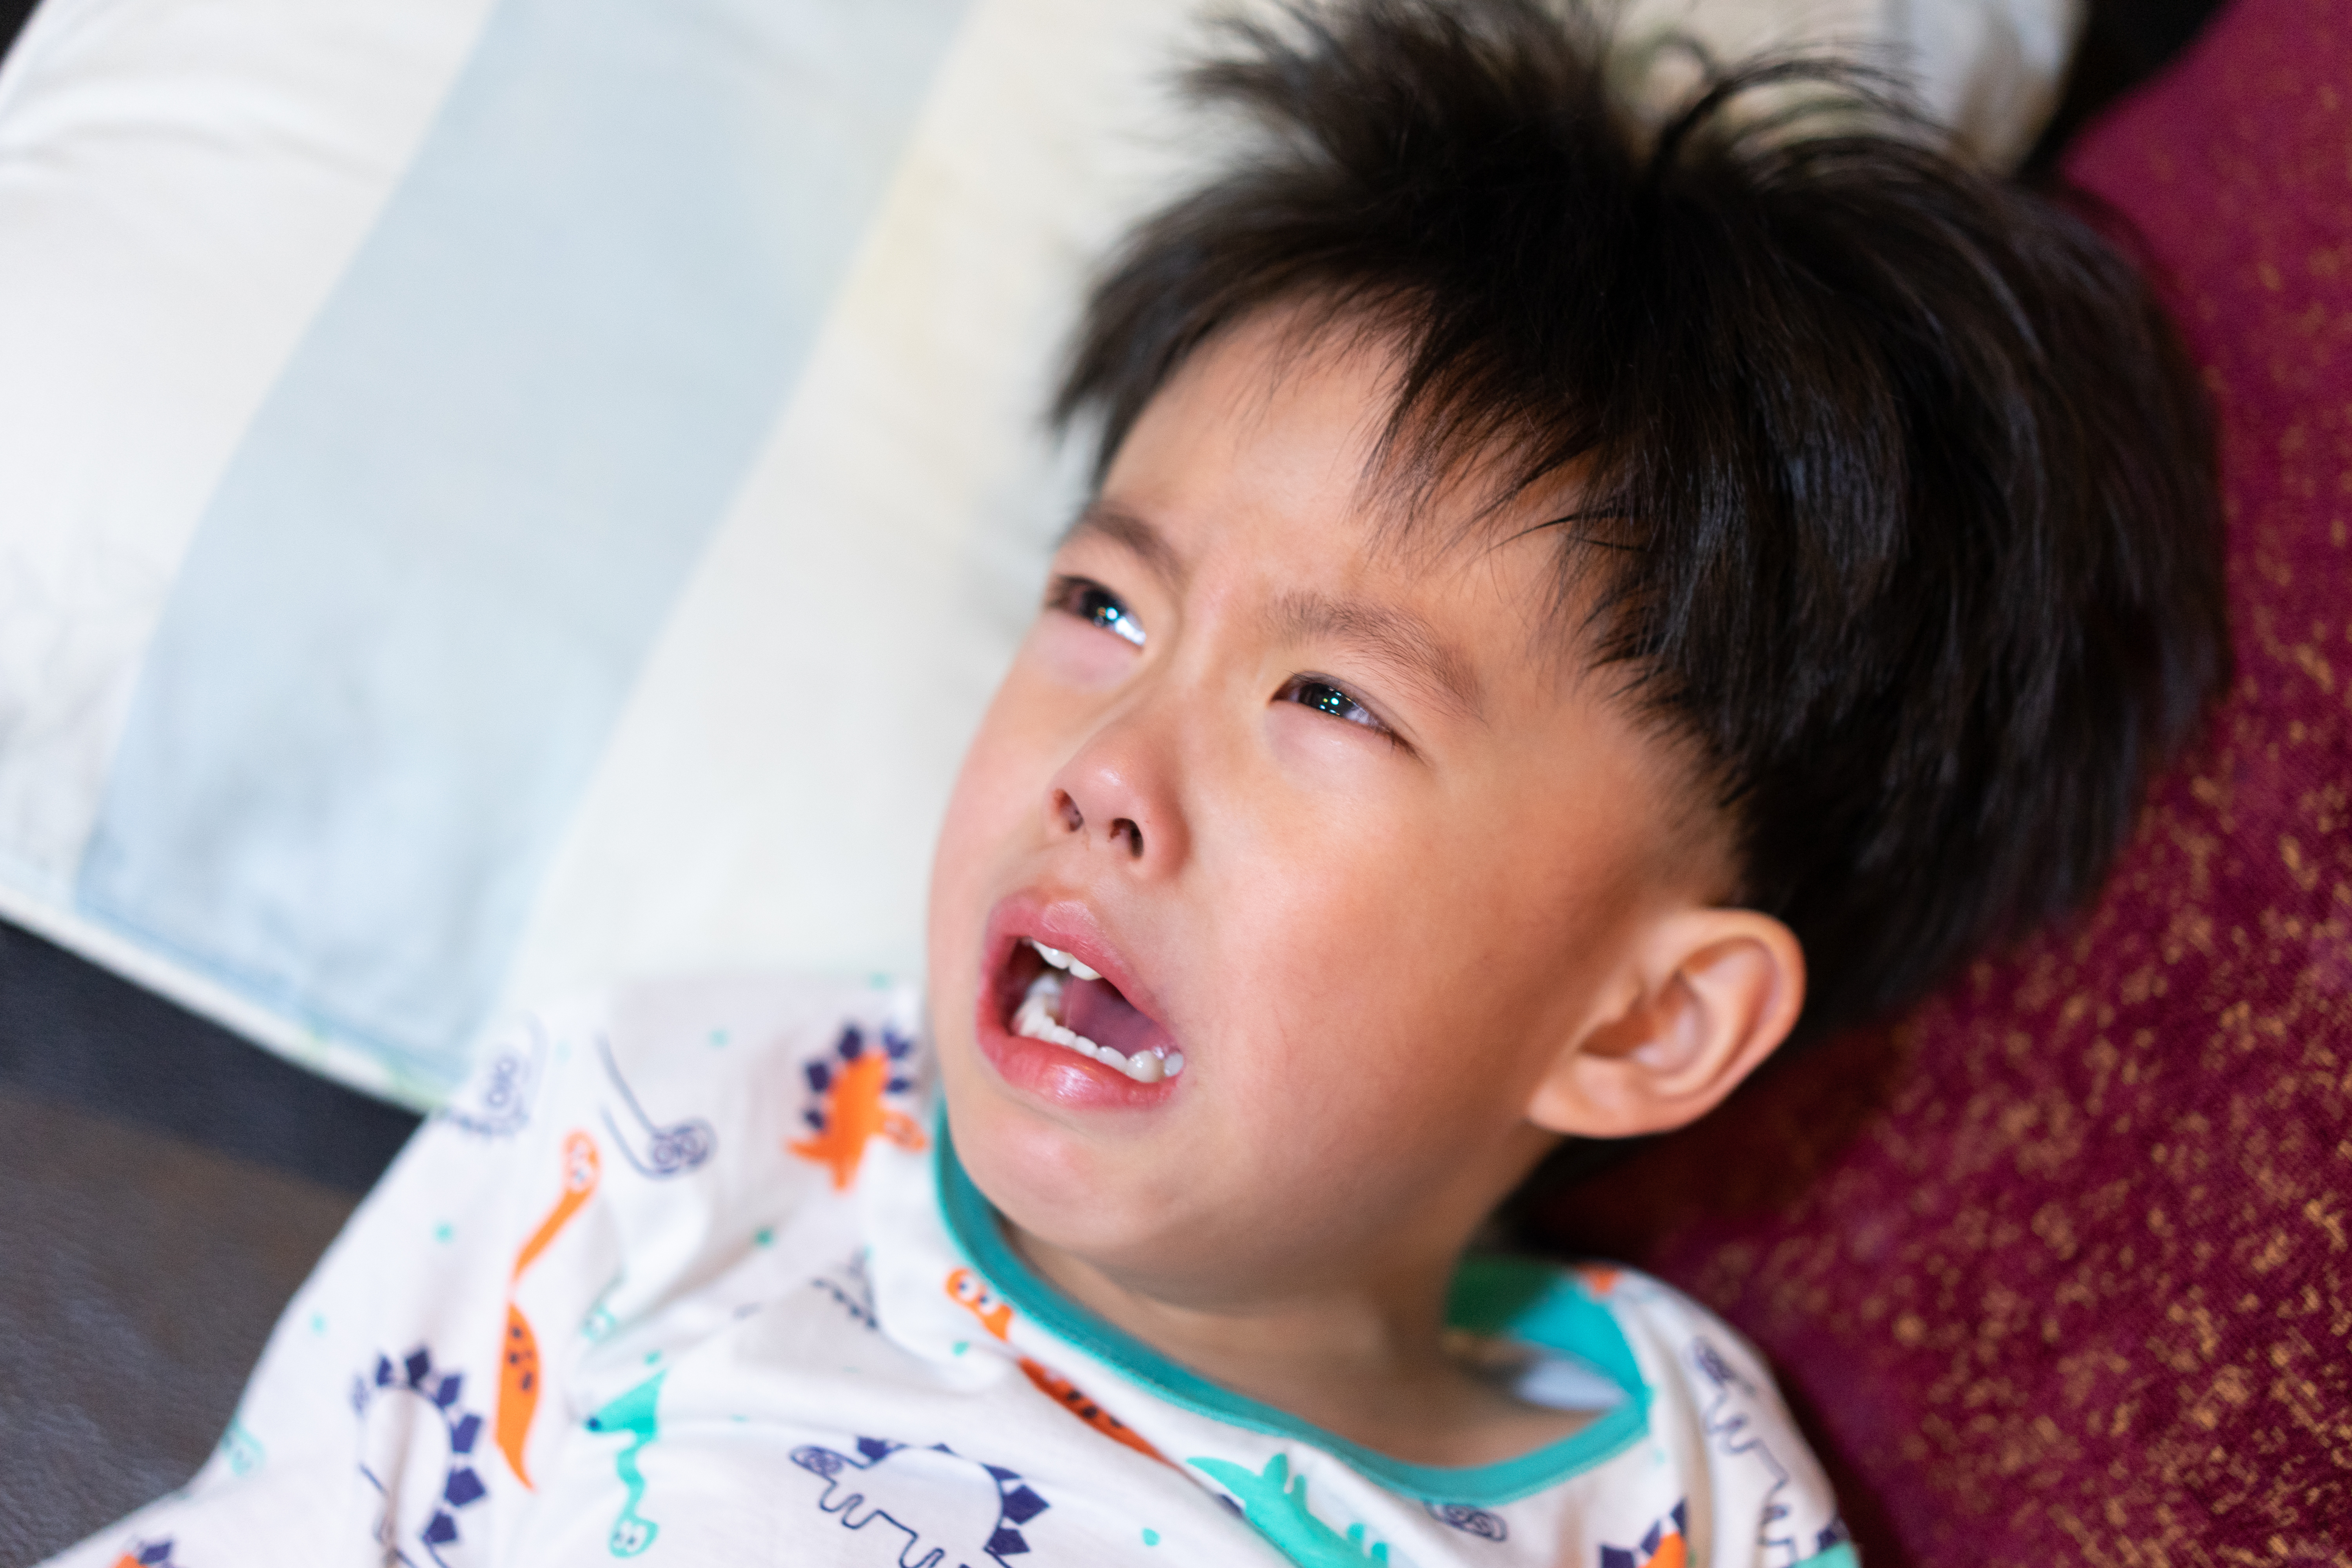 18 month old toddler tantrums with hitting & head banging